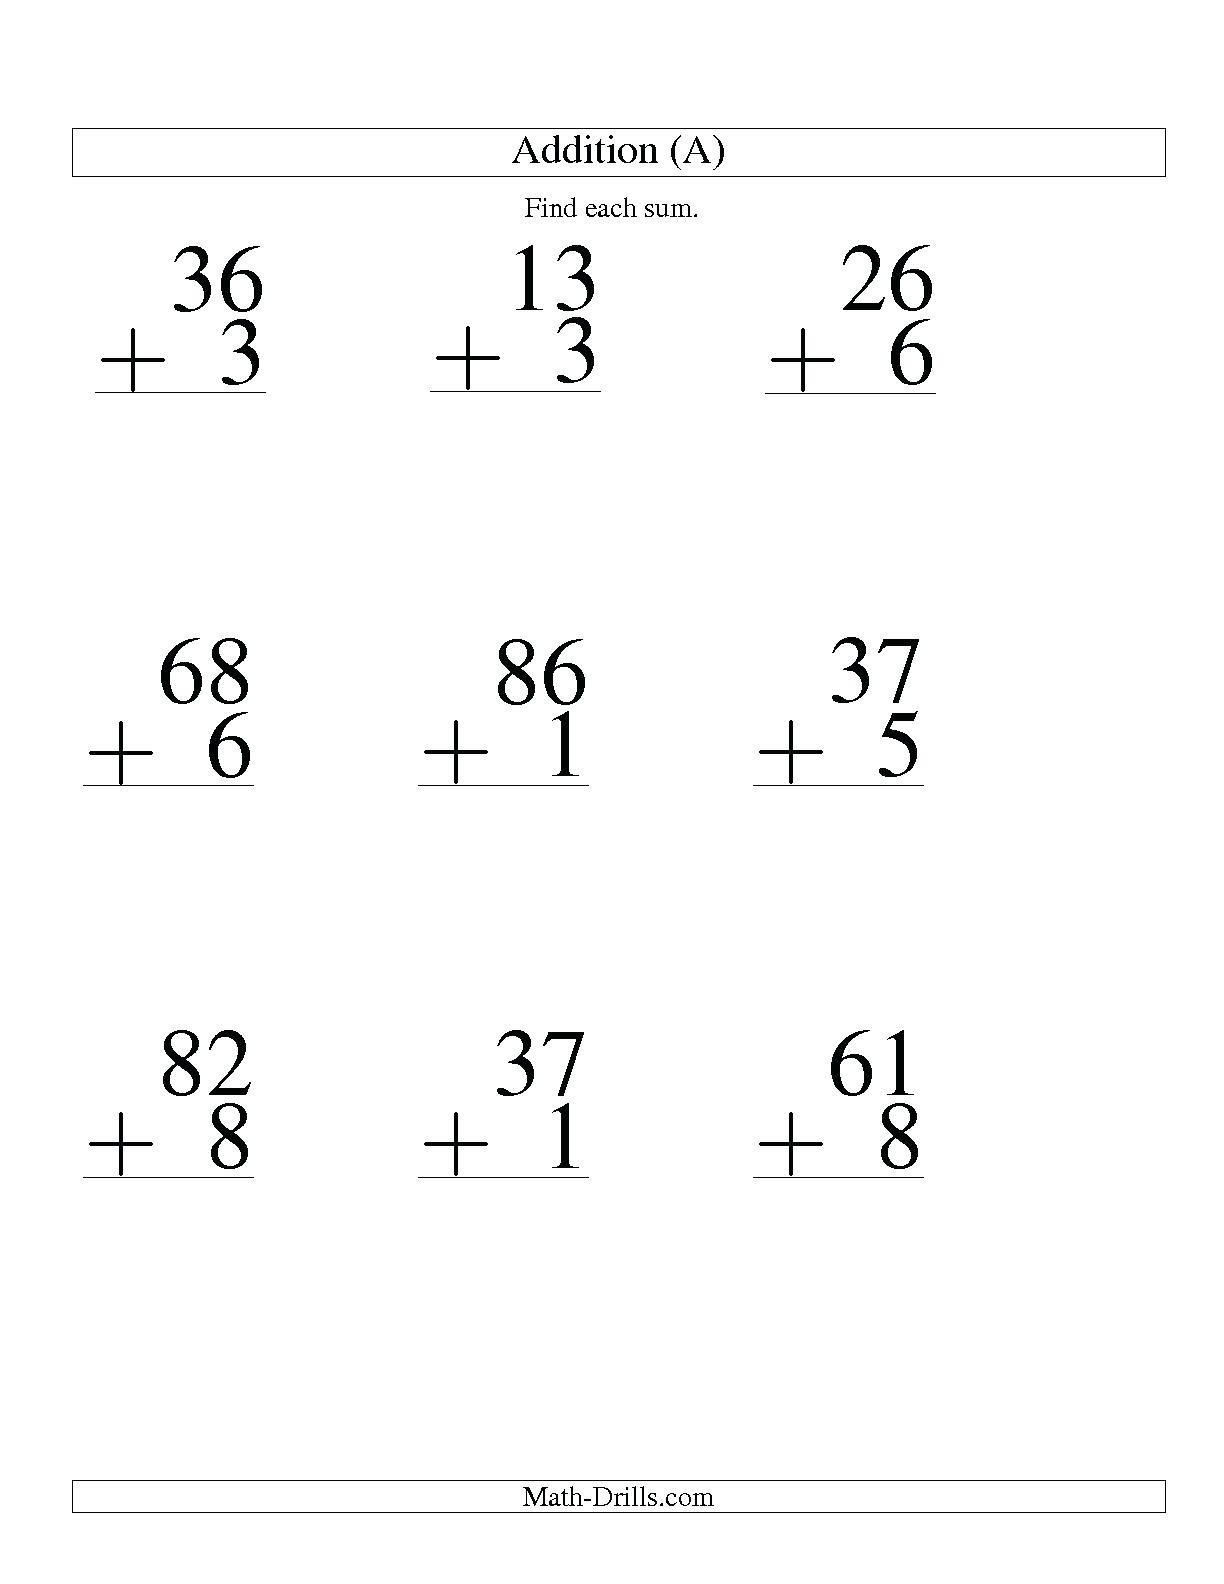 Subtraction Worksheet for 1st Grade 5 Free Math Worksheets First Grade 1 Addition Adding 2 Digit